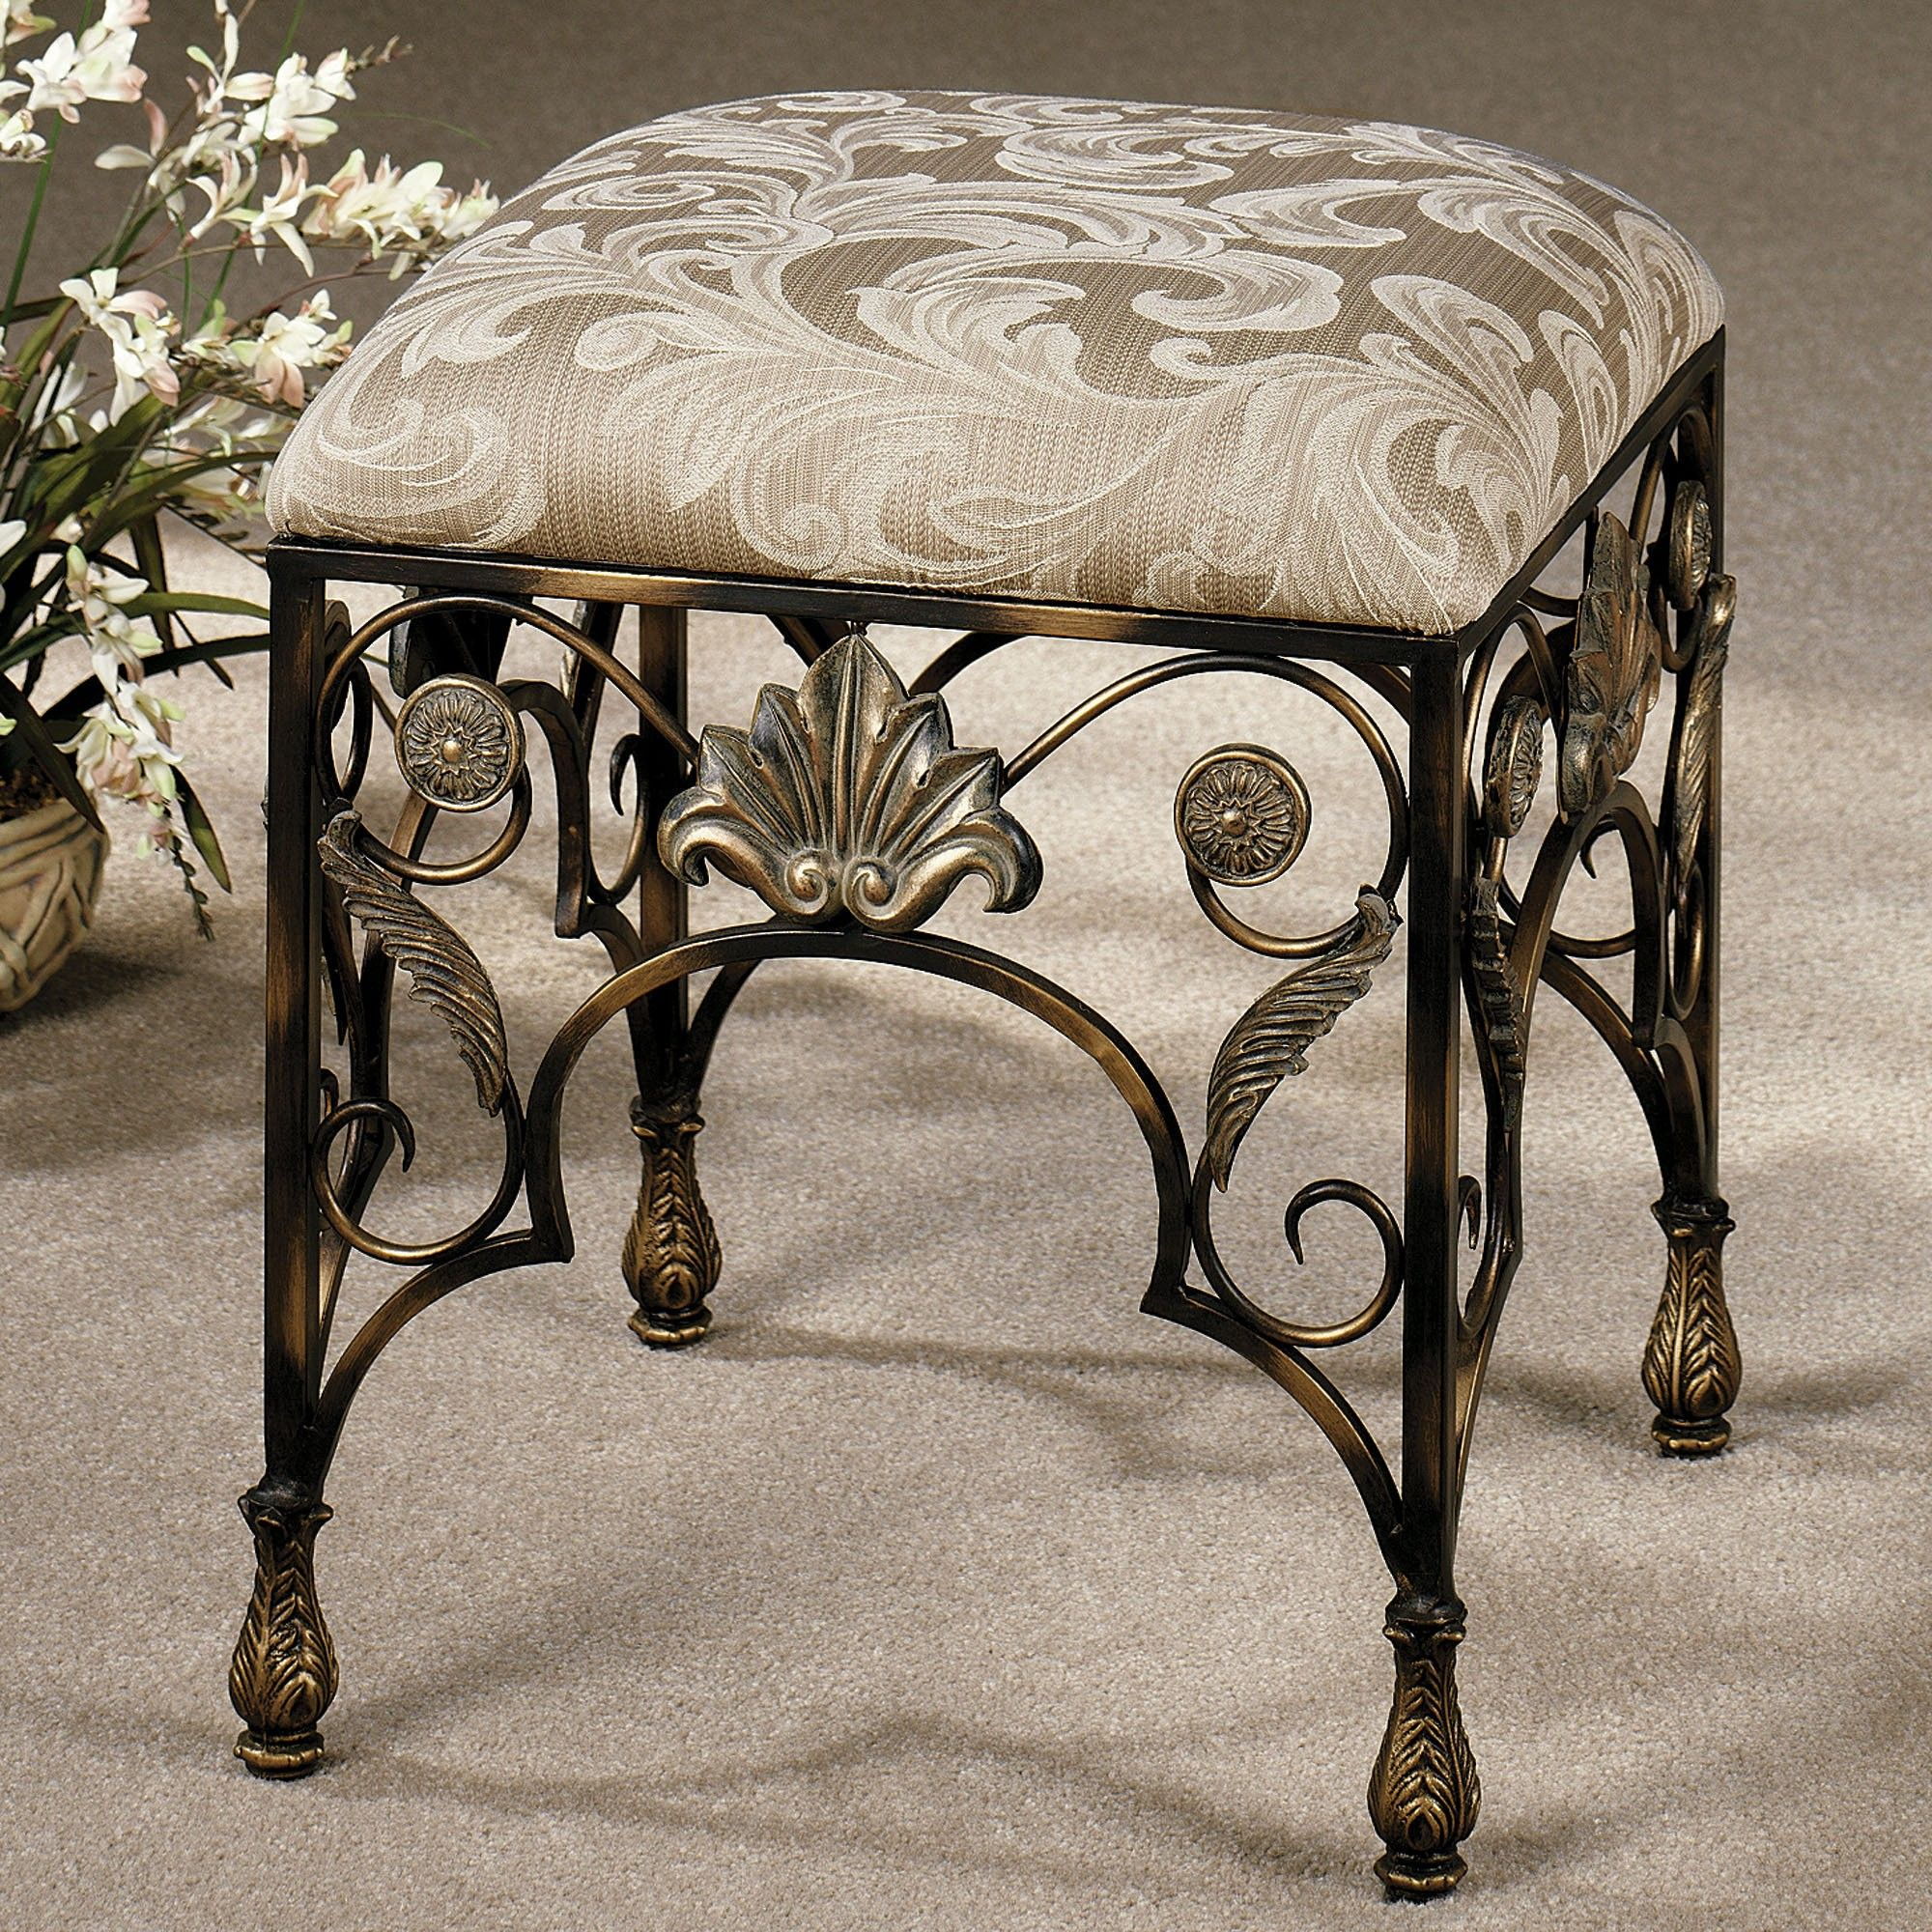 Bathroom Furniture Elegant Backless Vanity Chair With Ornate Gilded Wrought Iron Frame And Square Fabric Uphols Vanity Stool Bathroom Vanity Chair Vanity Chair